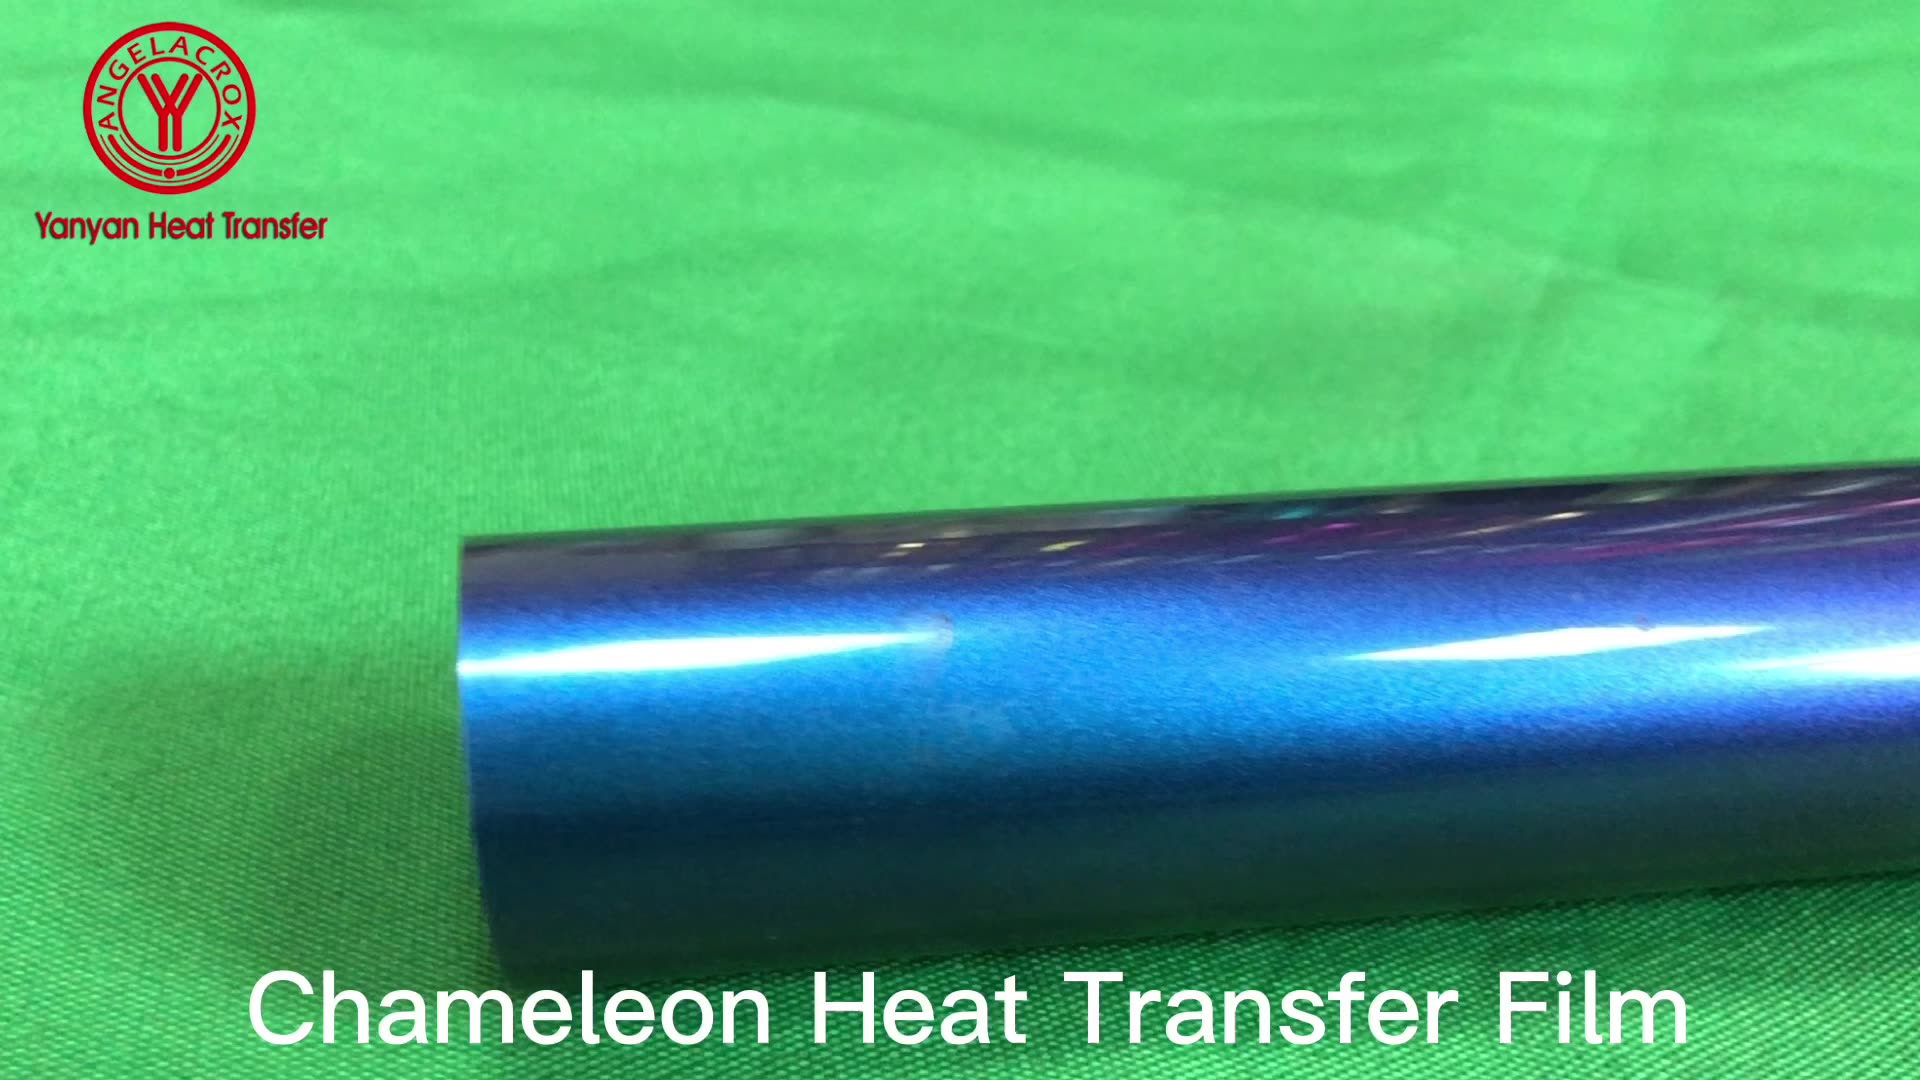 Chameleon Heat Transfer Film Discolored HTV Vinyl optics PU  camouflage Anole  Heat Transfer vinylfor clothes wholesale